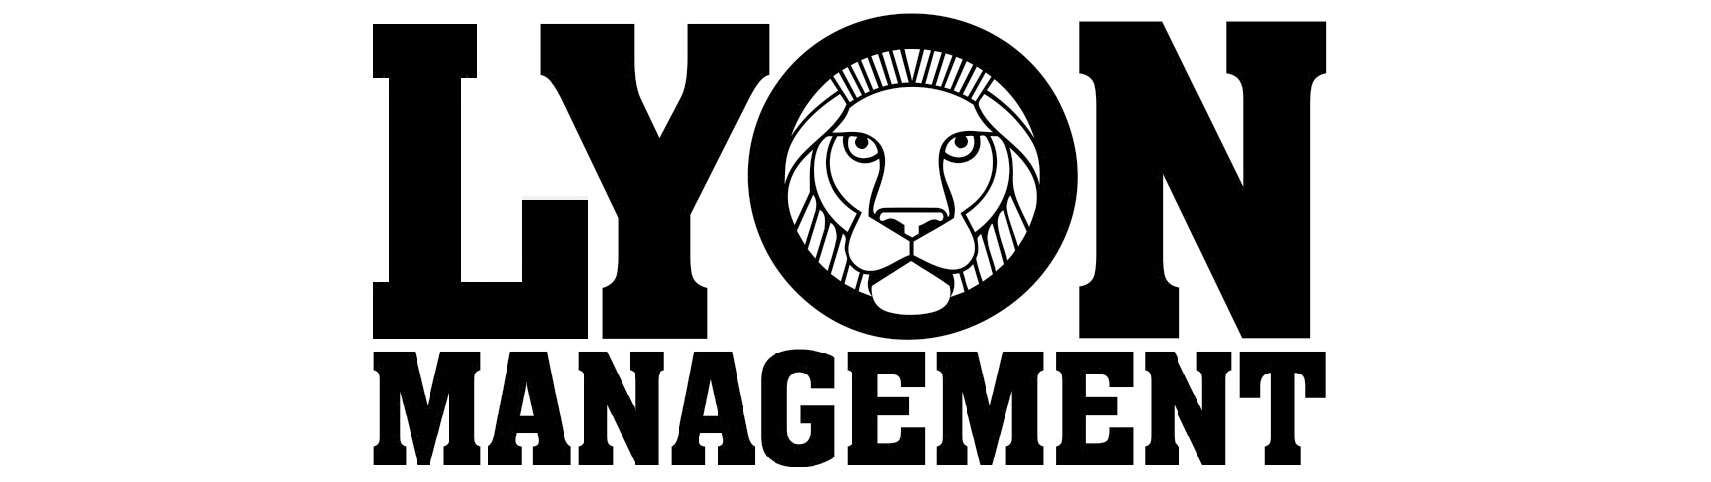 Lyon Management Company